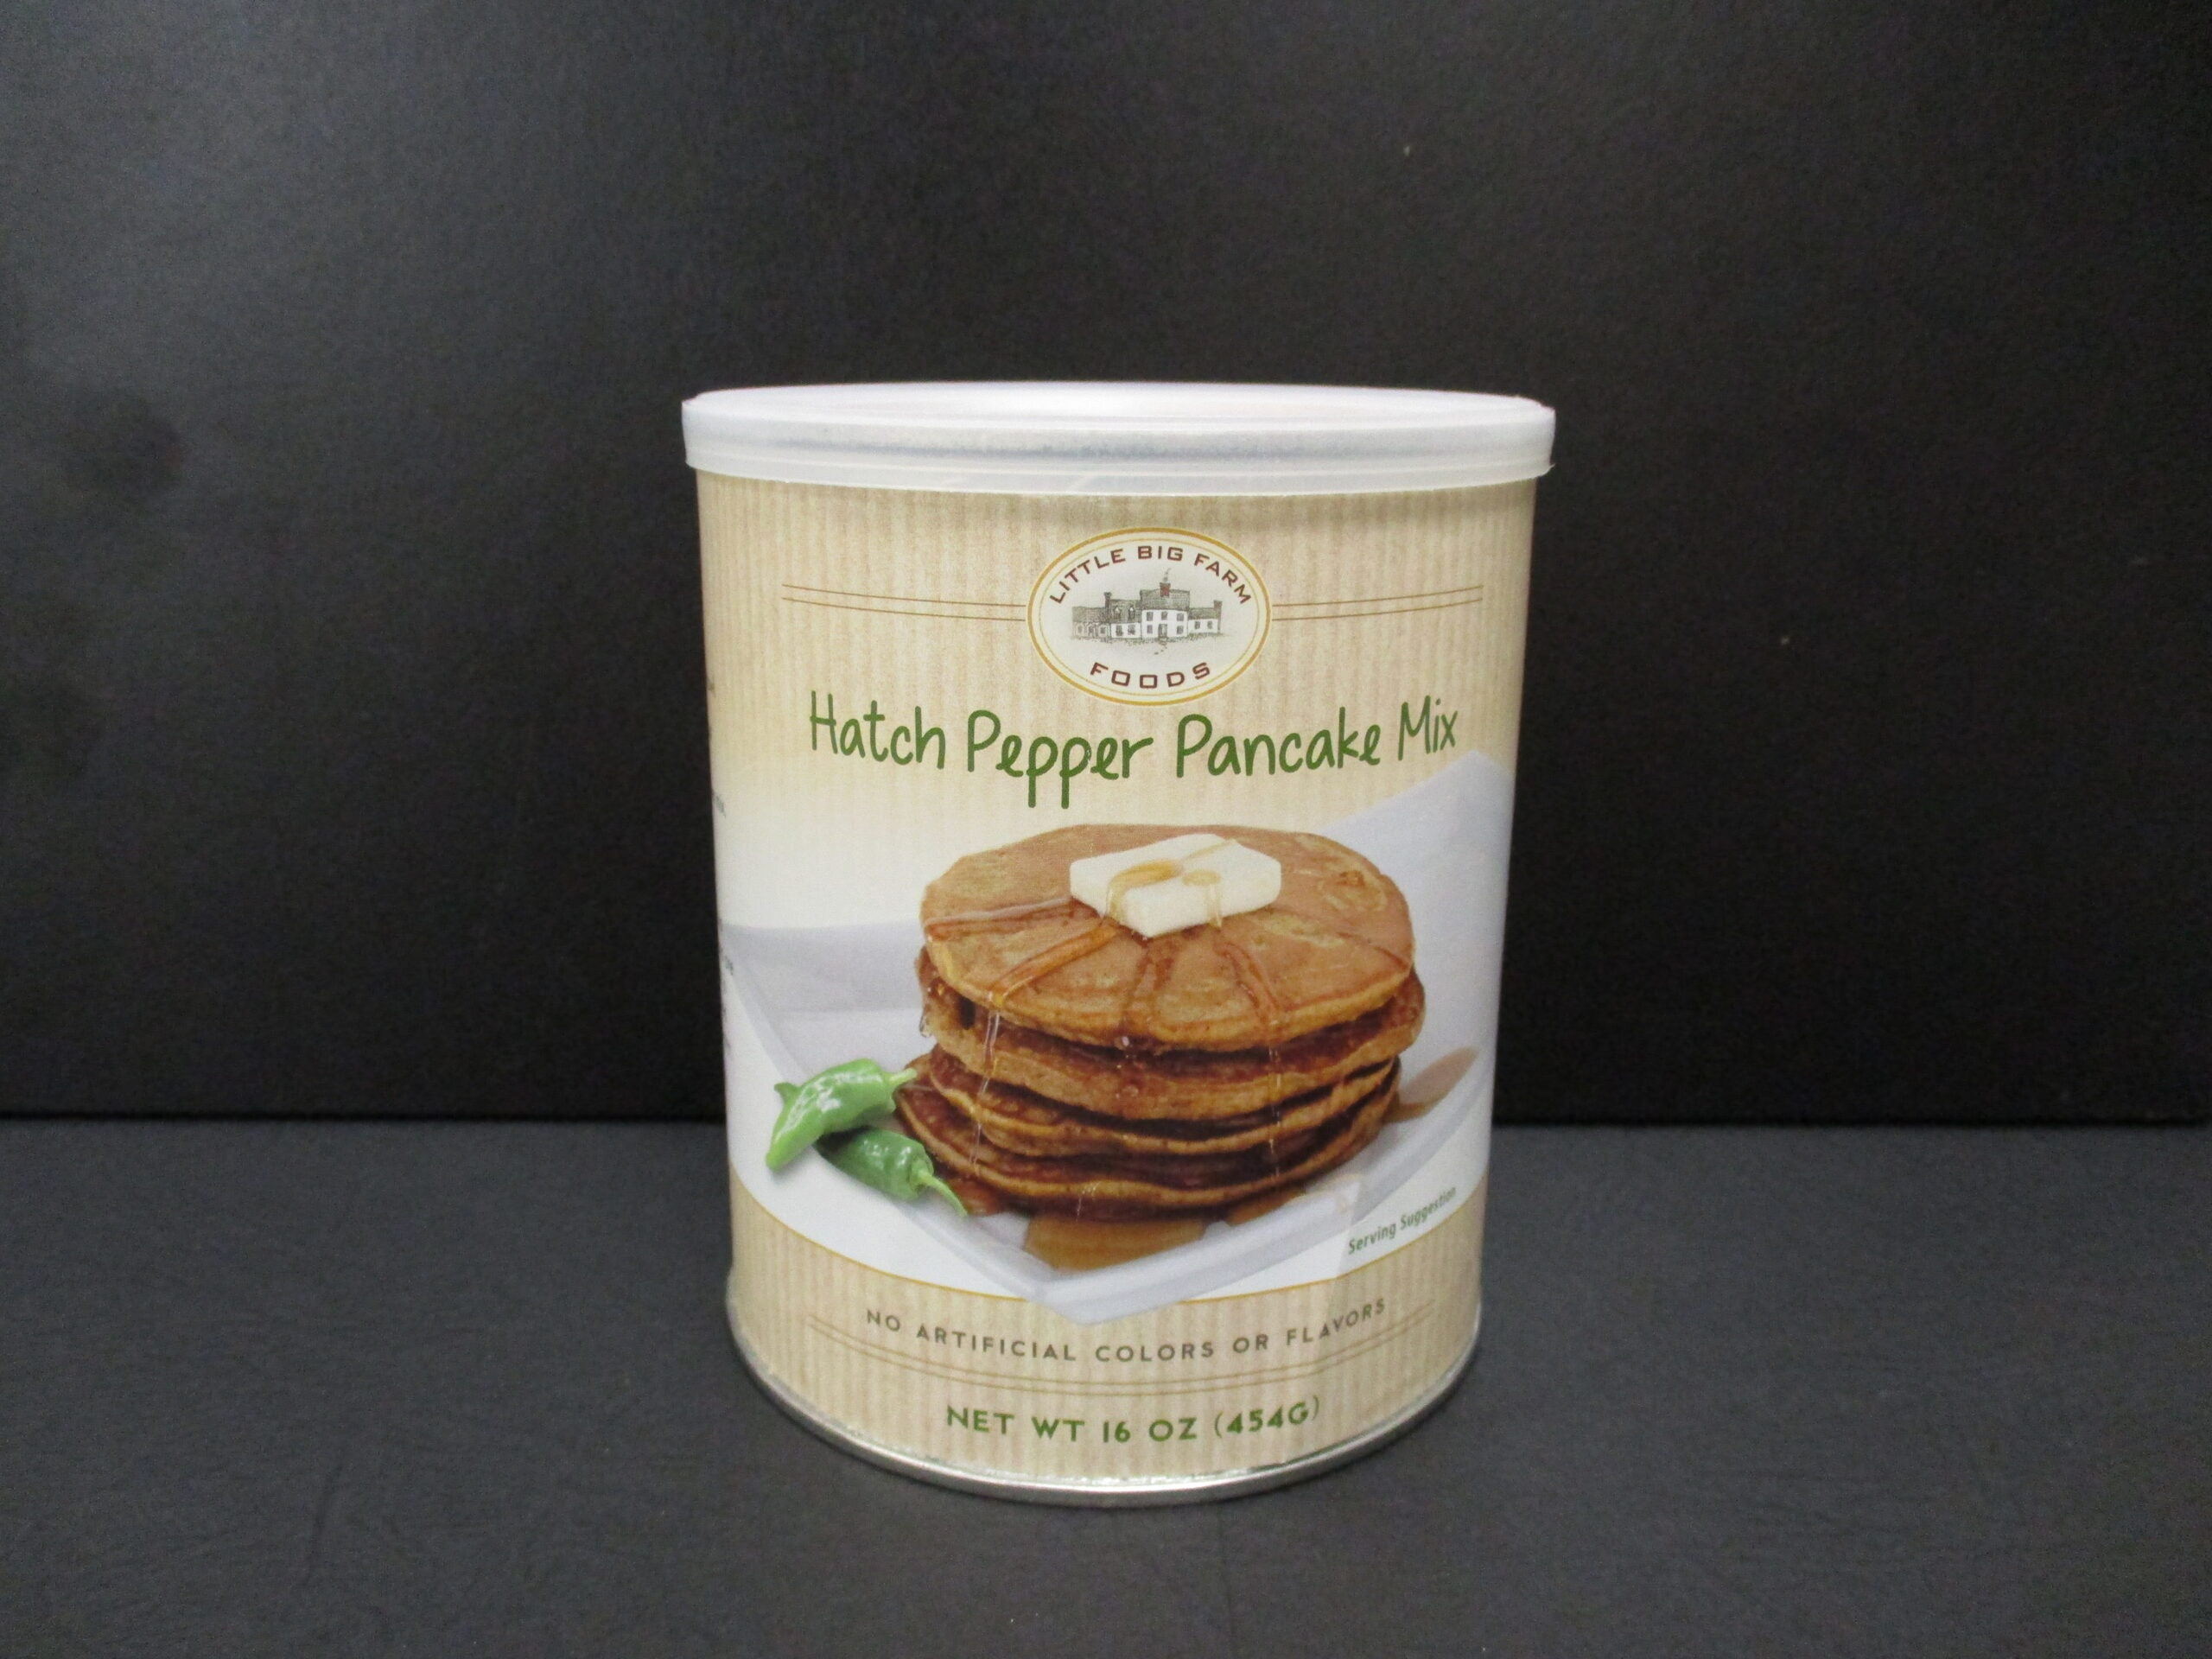 Hatch Pepper Pancake and Waffle Mix